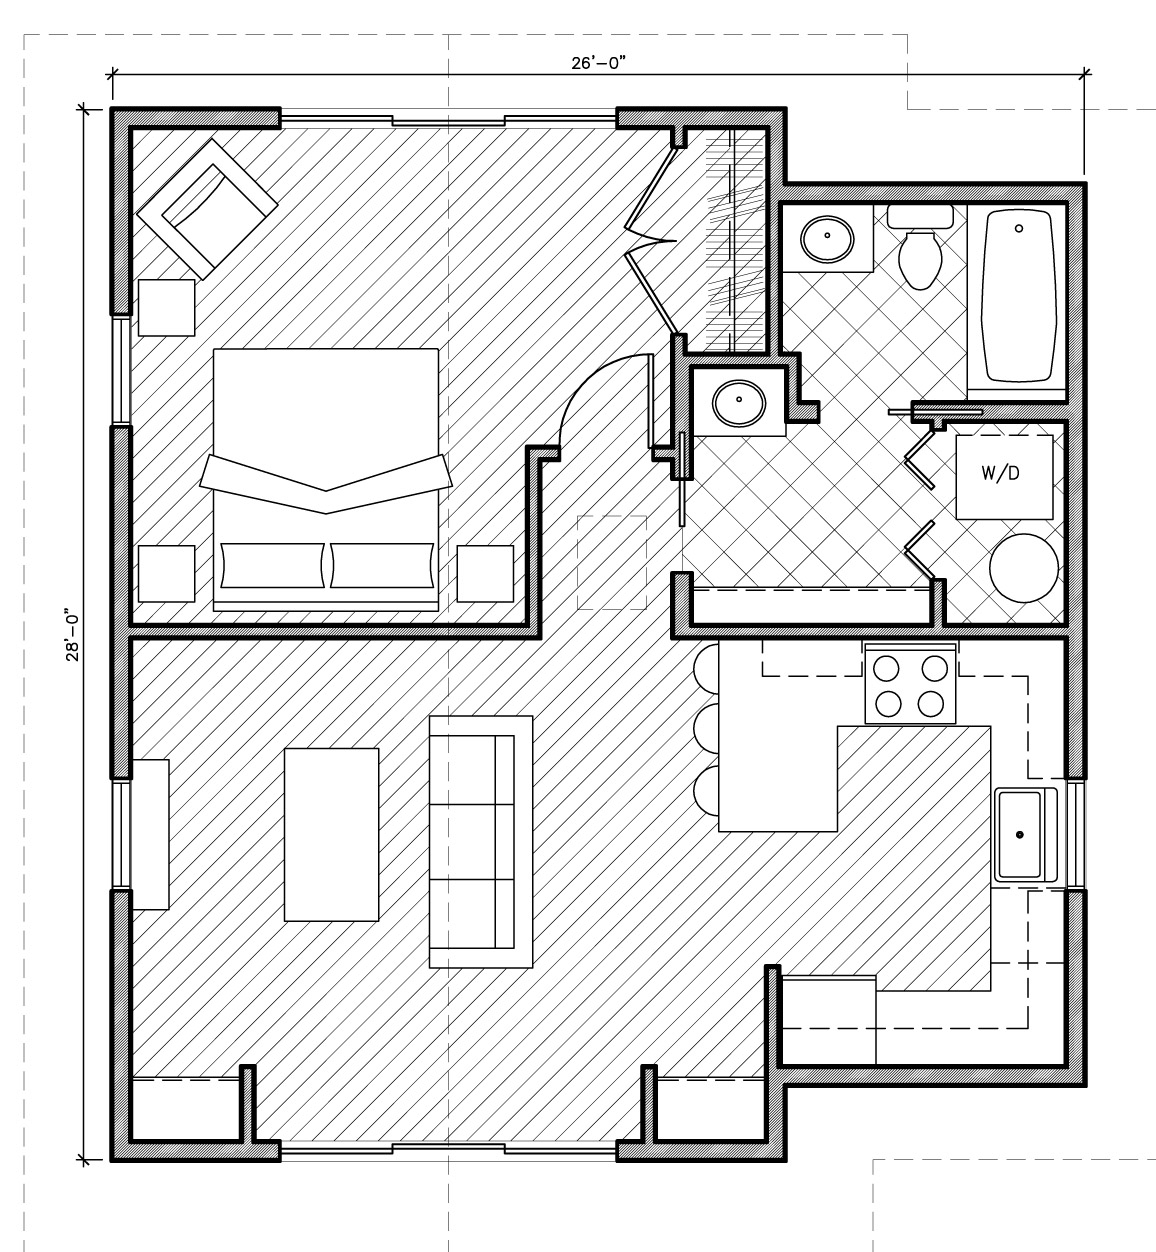 Simple One Bedroom Cottage @ Architectural Designs